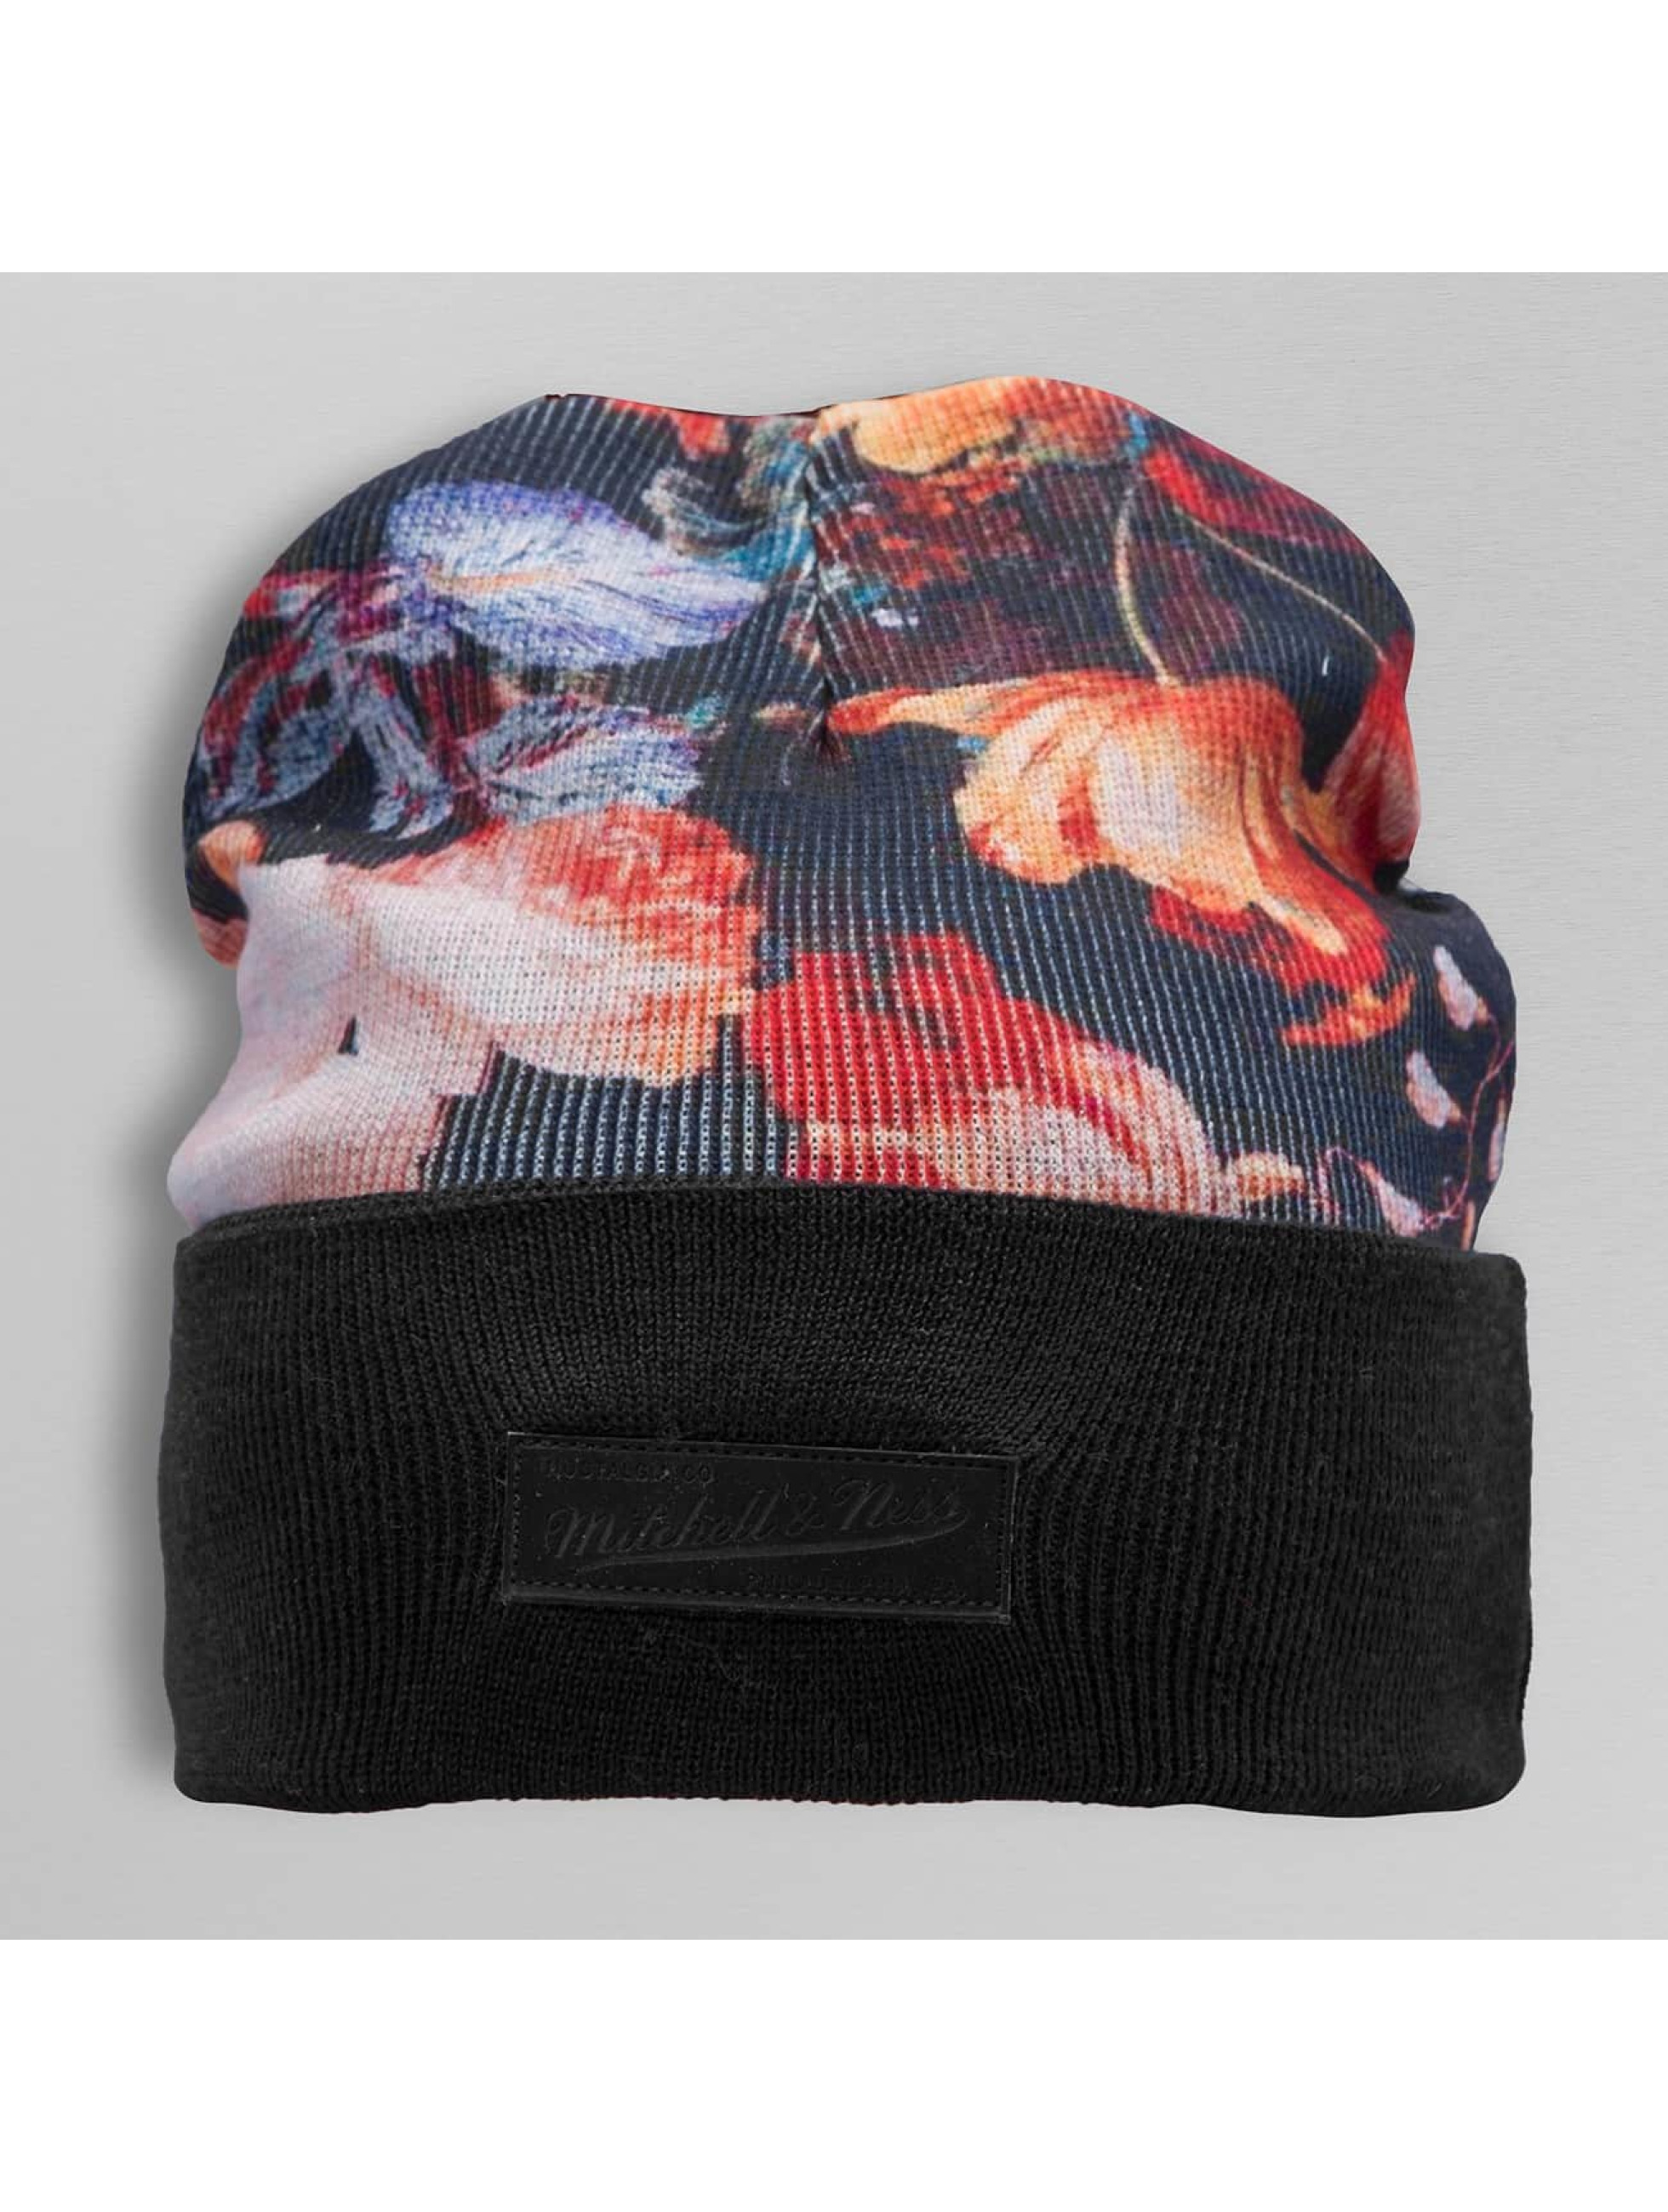 Mitchell & Ness Hat-1 Antique Floral Cuff Knit colored